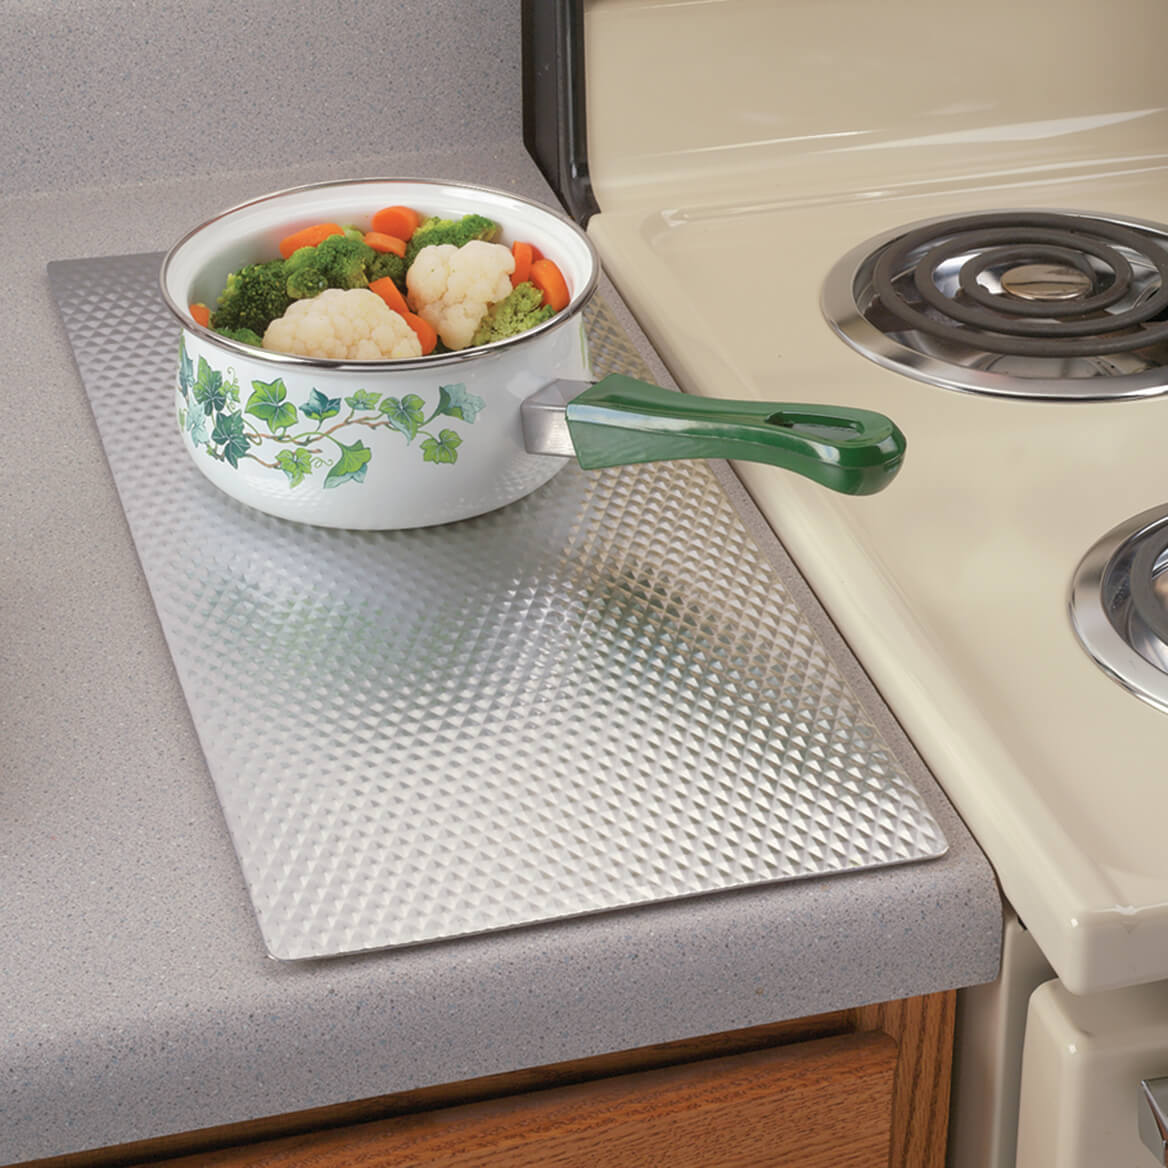 ... Insulated Kitchen Countertop Protector On Kitchen Stove Protectors, Kitchen  Counter Guards, Kitchen Island Protectors ...